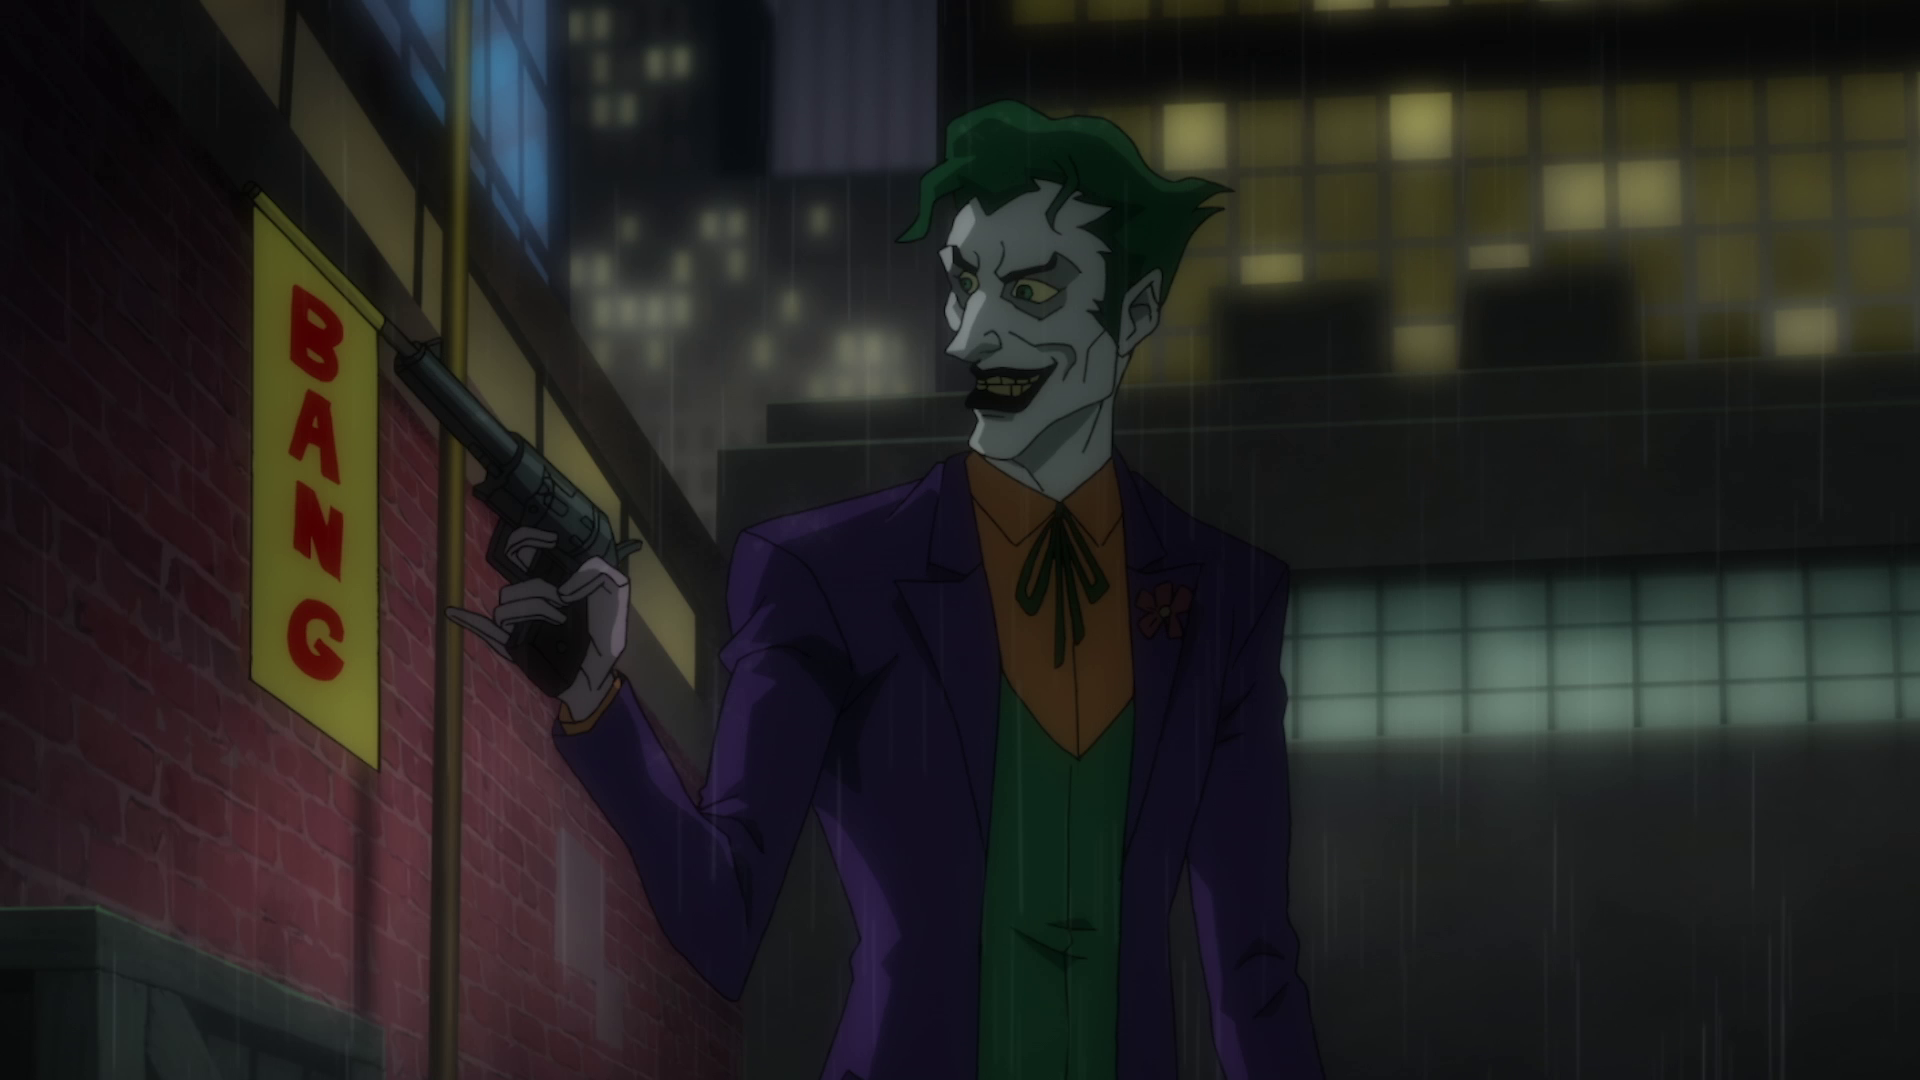 Joker Dc Animated Film Universe Villains Wiki Fandom